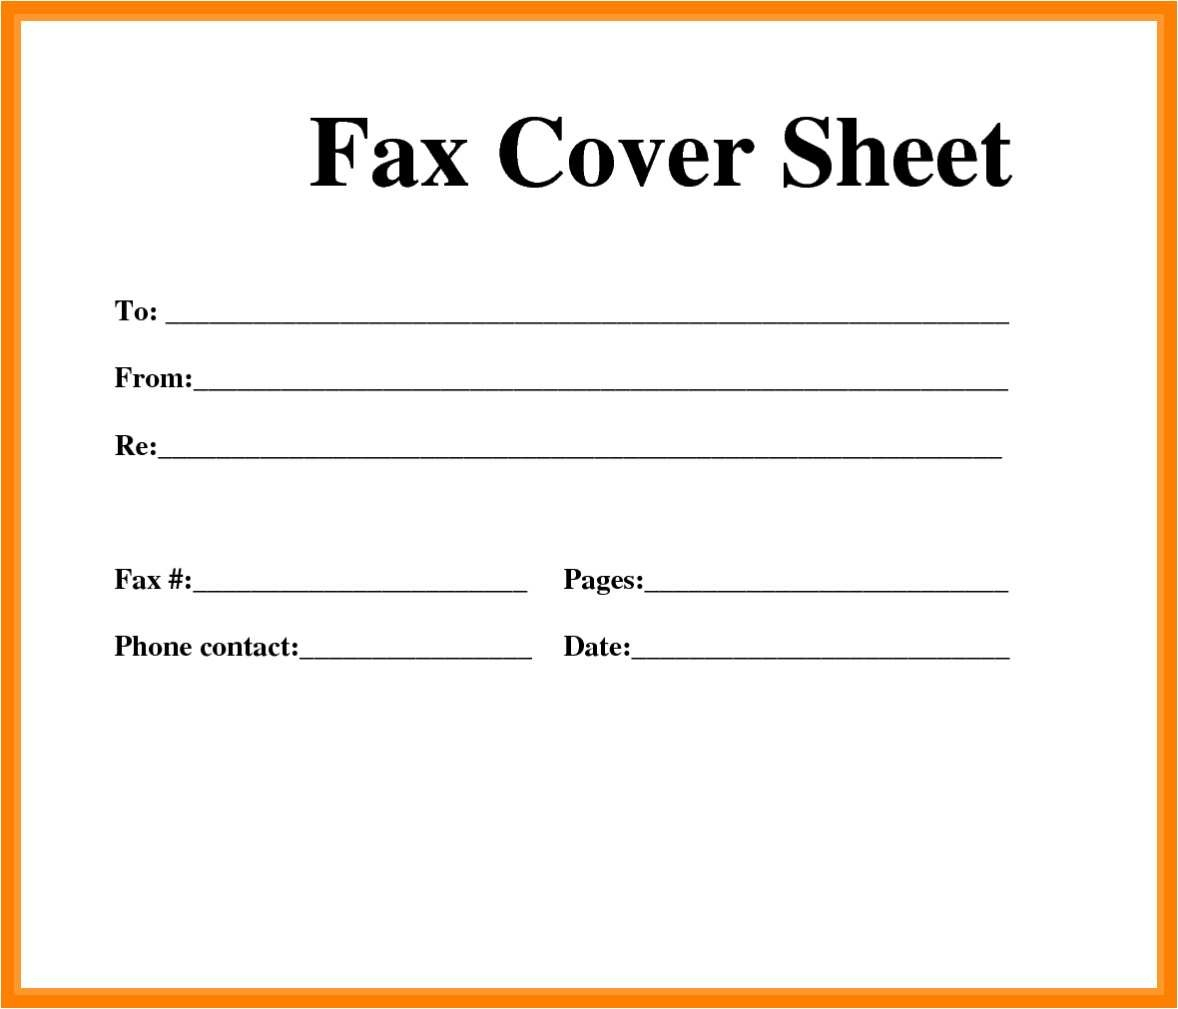 53 Fresh Fax Cover Sheet Template Word 2013 - All About Resume - Free Printable Fax Cover Sheet Pdf